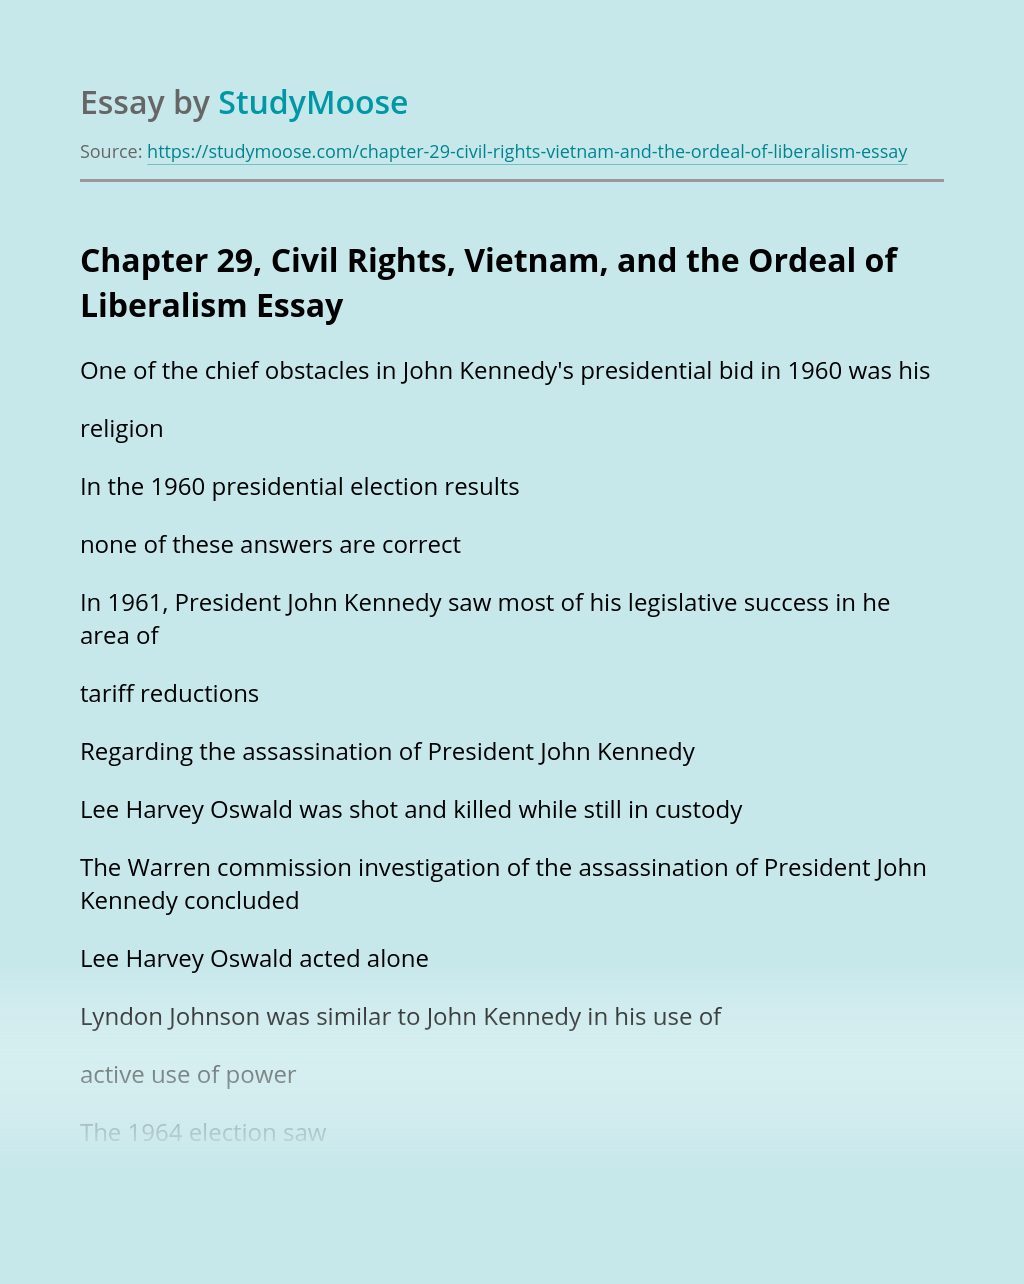 Chapter 29, Civil Rights, Vietnam, and the Ordeal of Liberalism